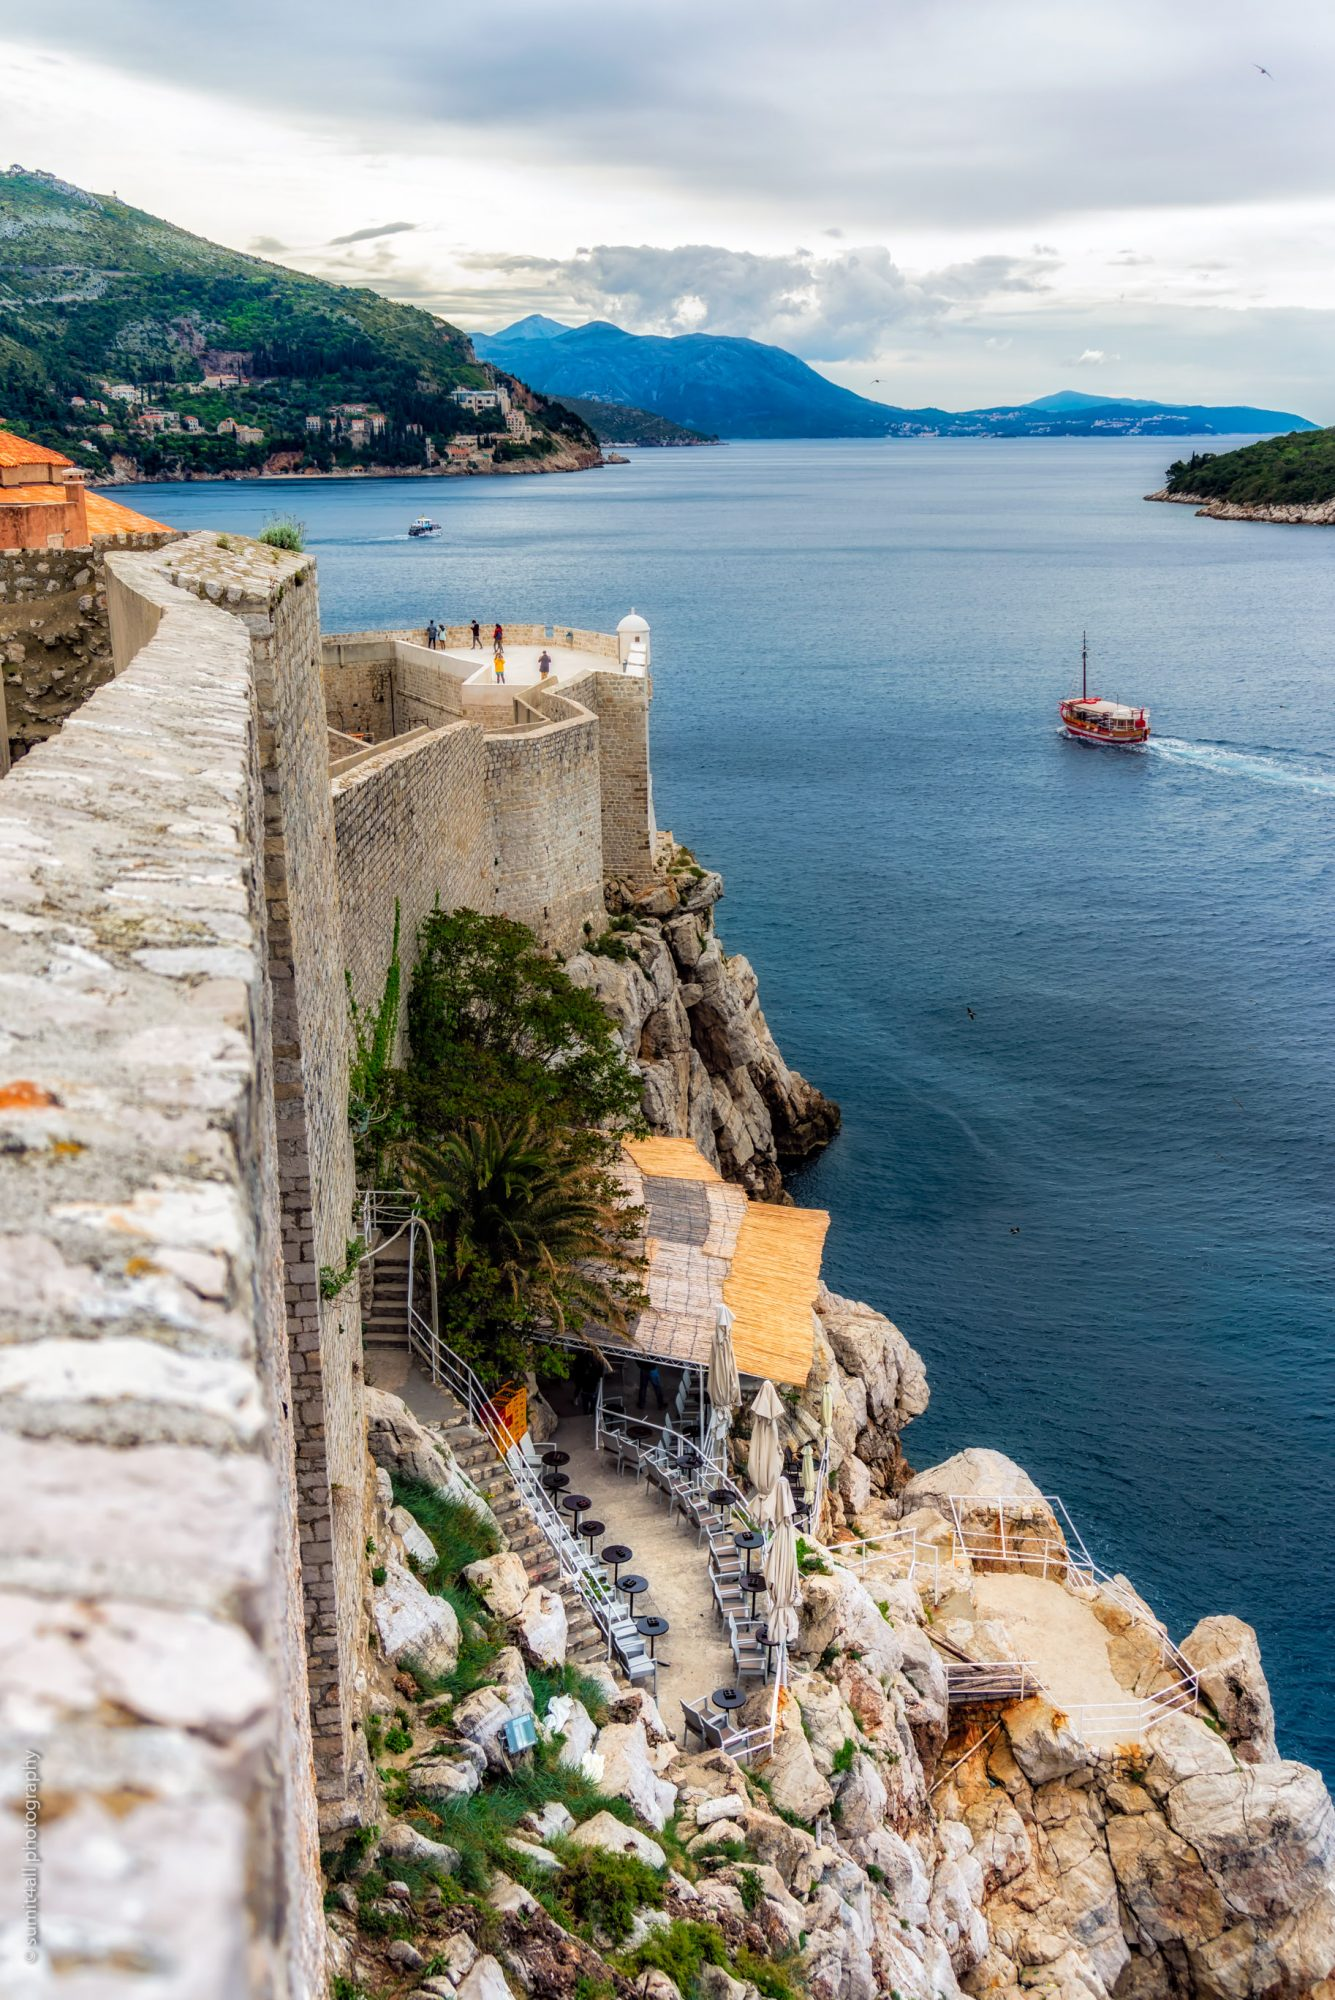 Boats cruising in the Adriatic Sea alongside the City Walls of Dubrovnik